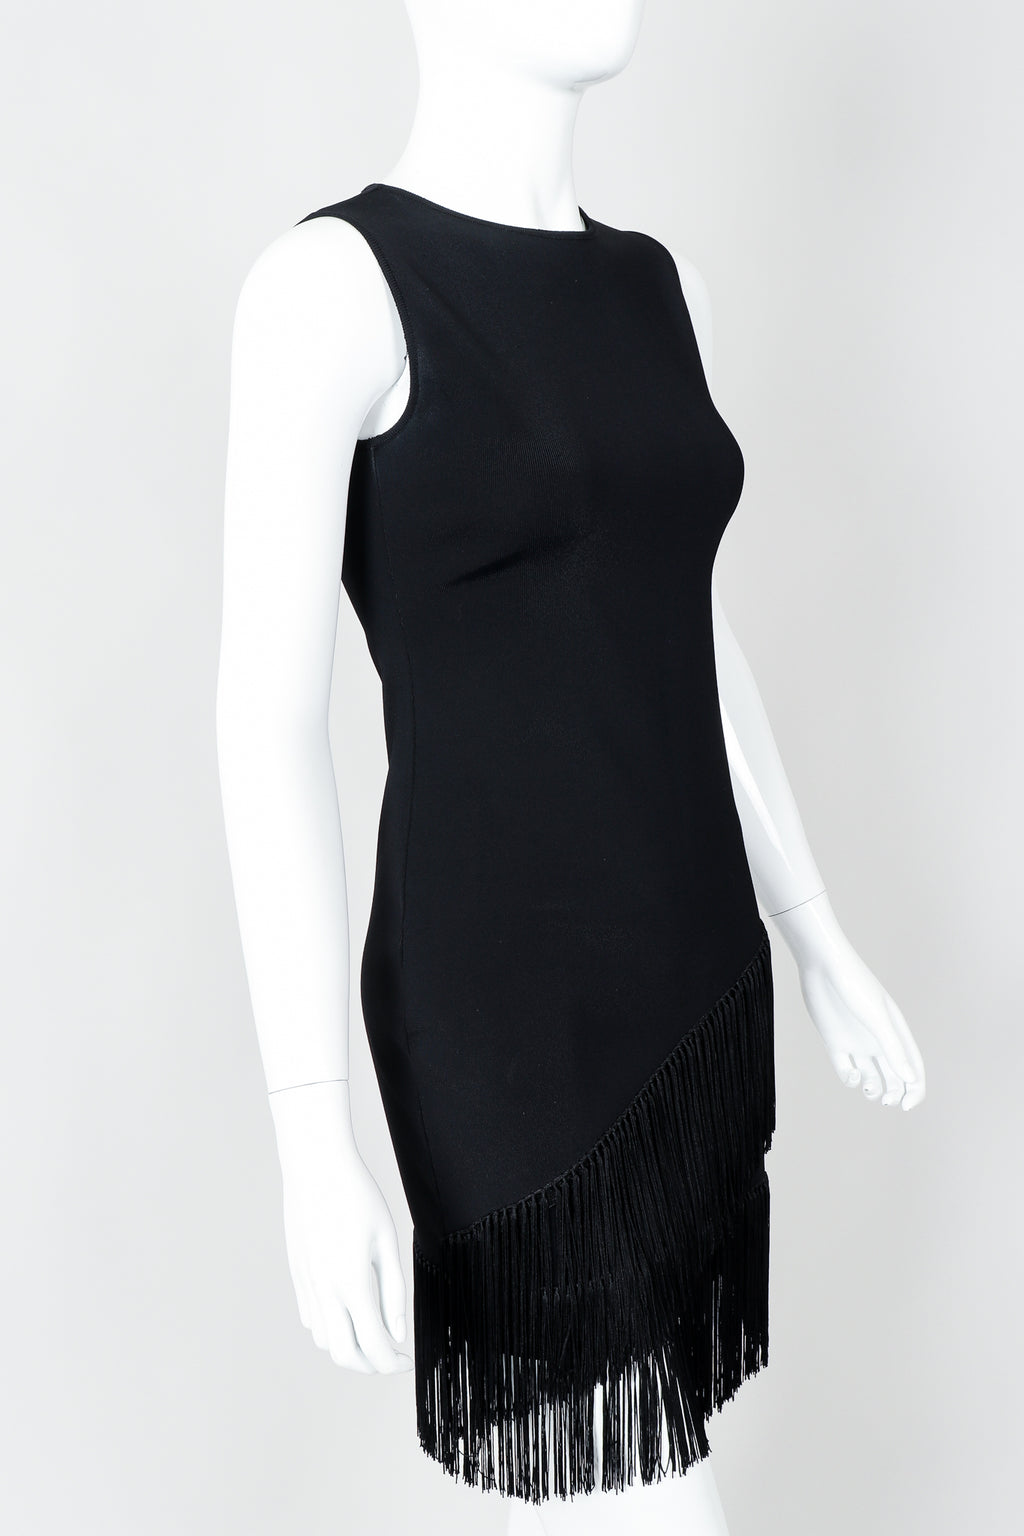 Vintage Loris Azzaro Asymmetrical Fringe Hem Dress on Mannequin cropped, at Recess